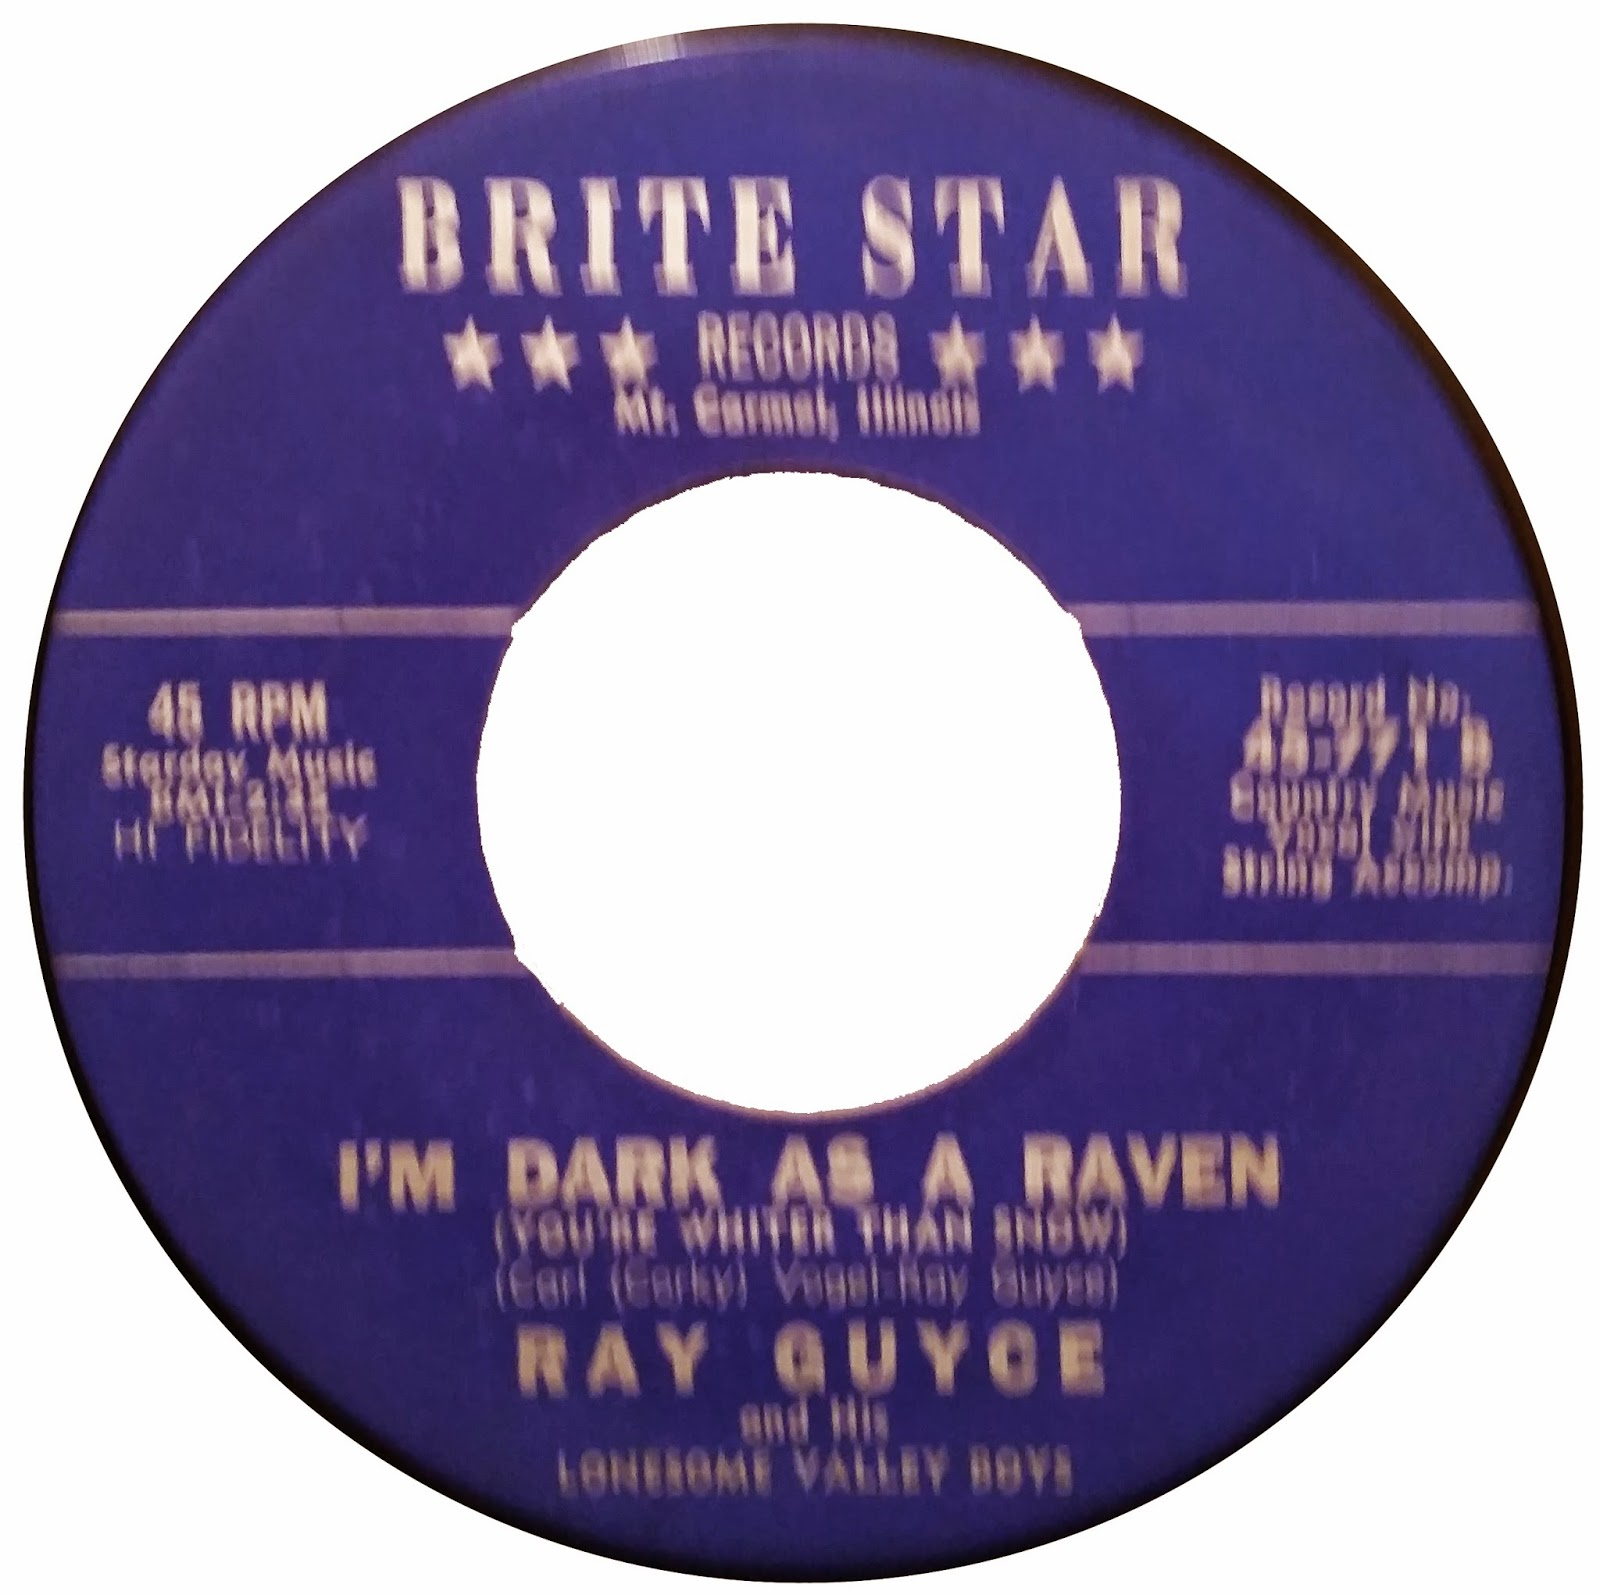 Ray Guyce And His Lonesome Valley Boys Rattle Your Rockets Im Dark As A Raven